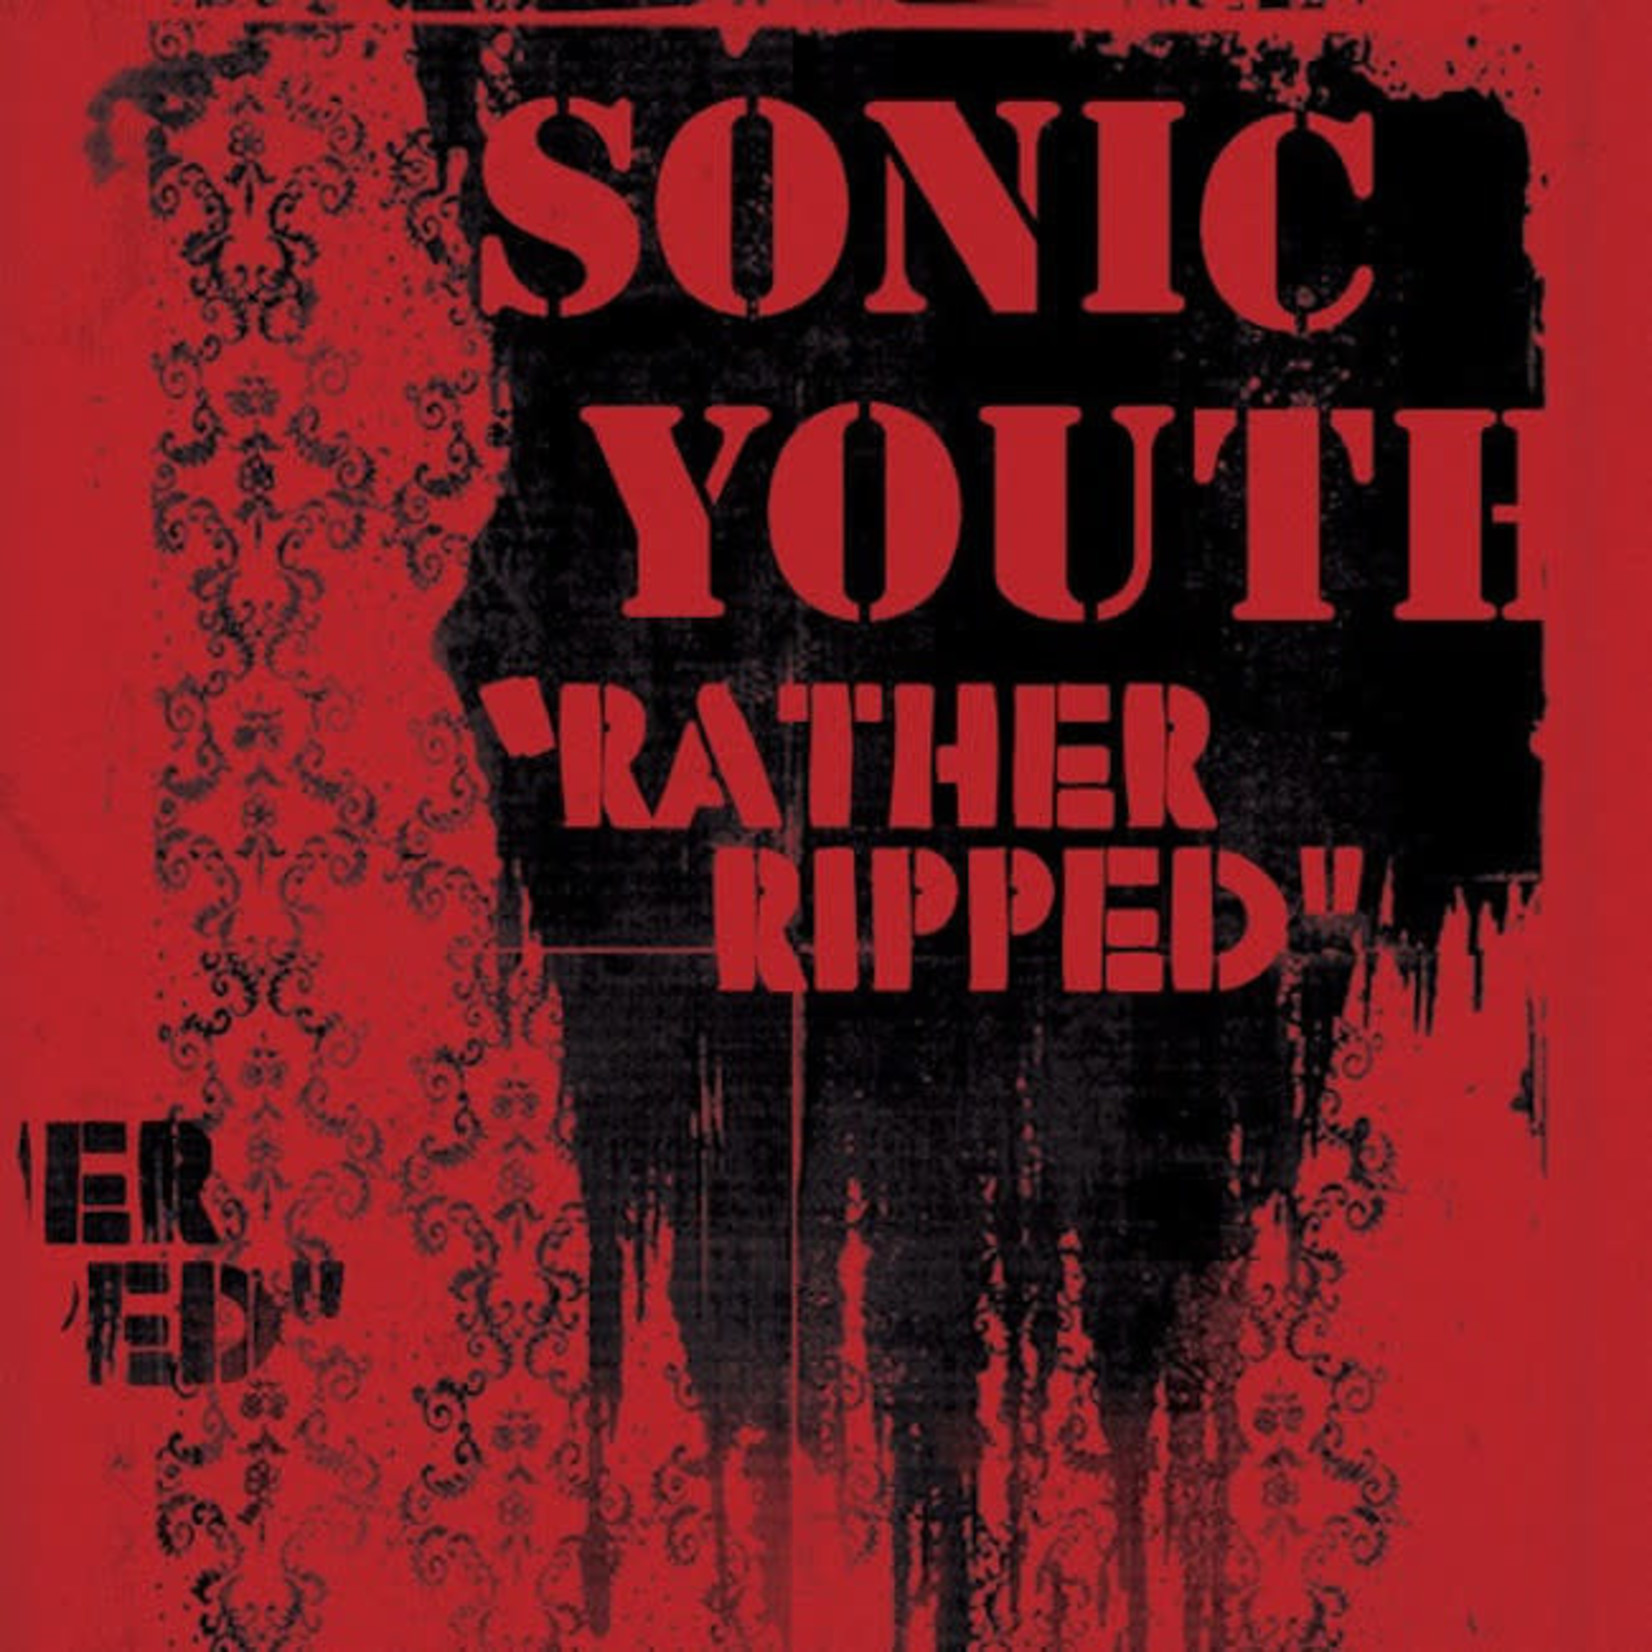 [New] Sonic Youth: Rather Ripped